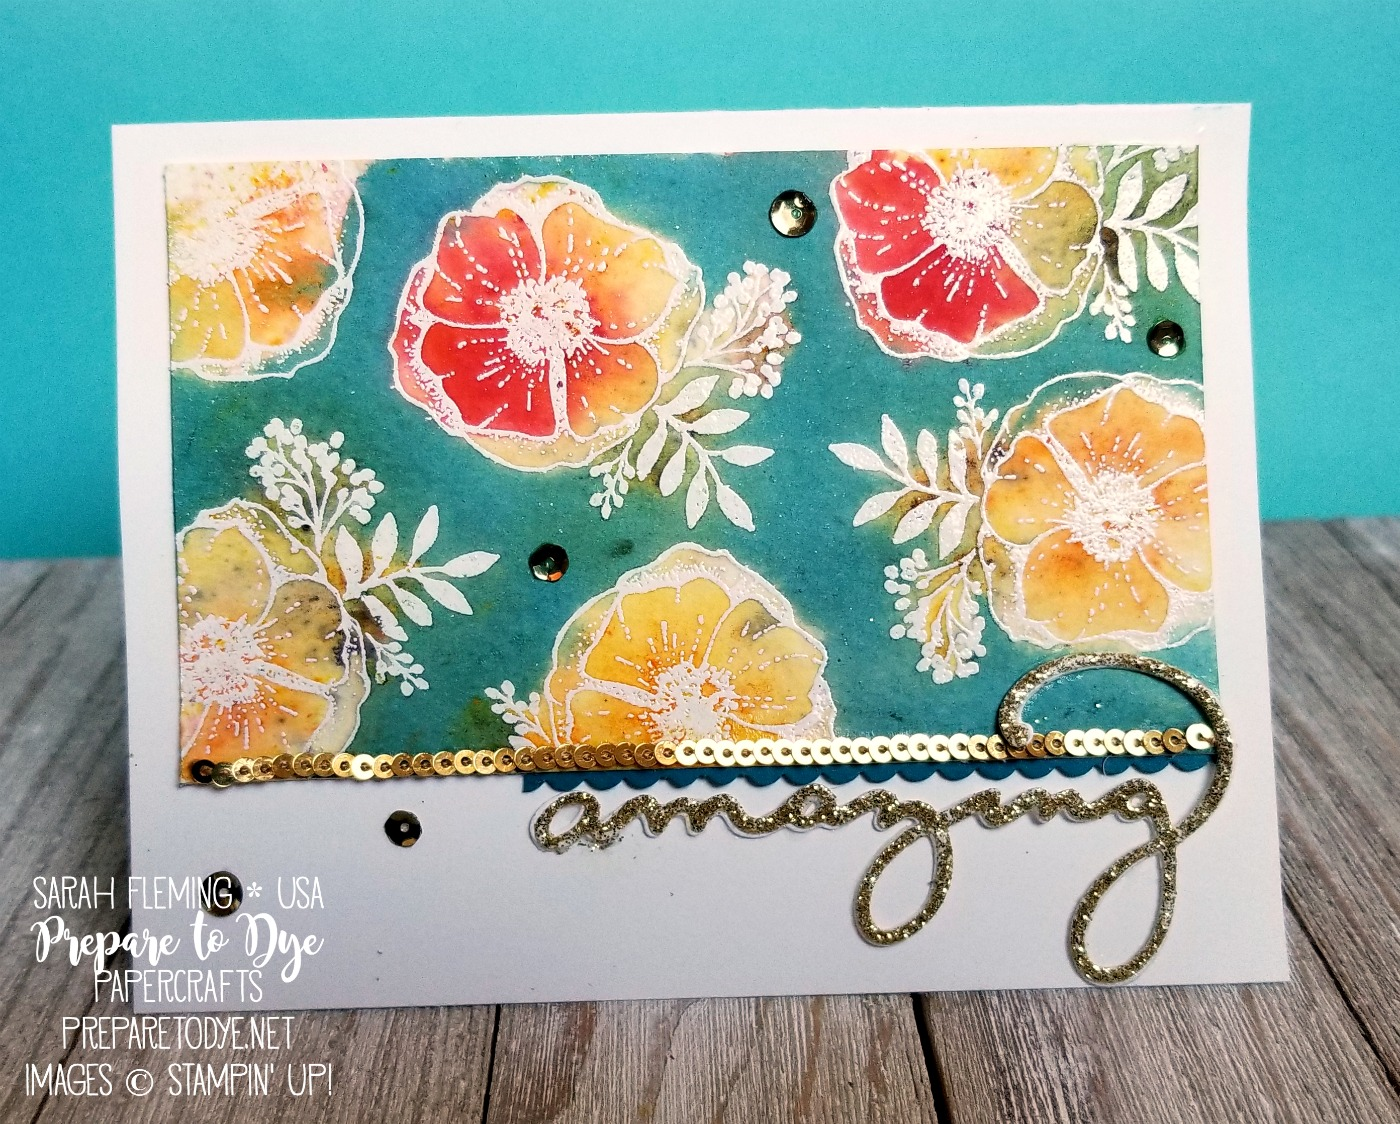 Stampin' Up! Amazing You with Brusho Crystal Colour watercolor powders, Celebrate You thinlits - handmade emboss resist card - Sarah Fleming - Prepare to Dye Papercrafts